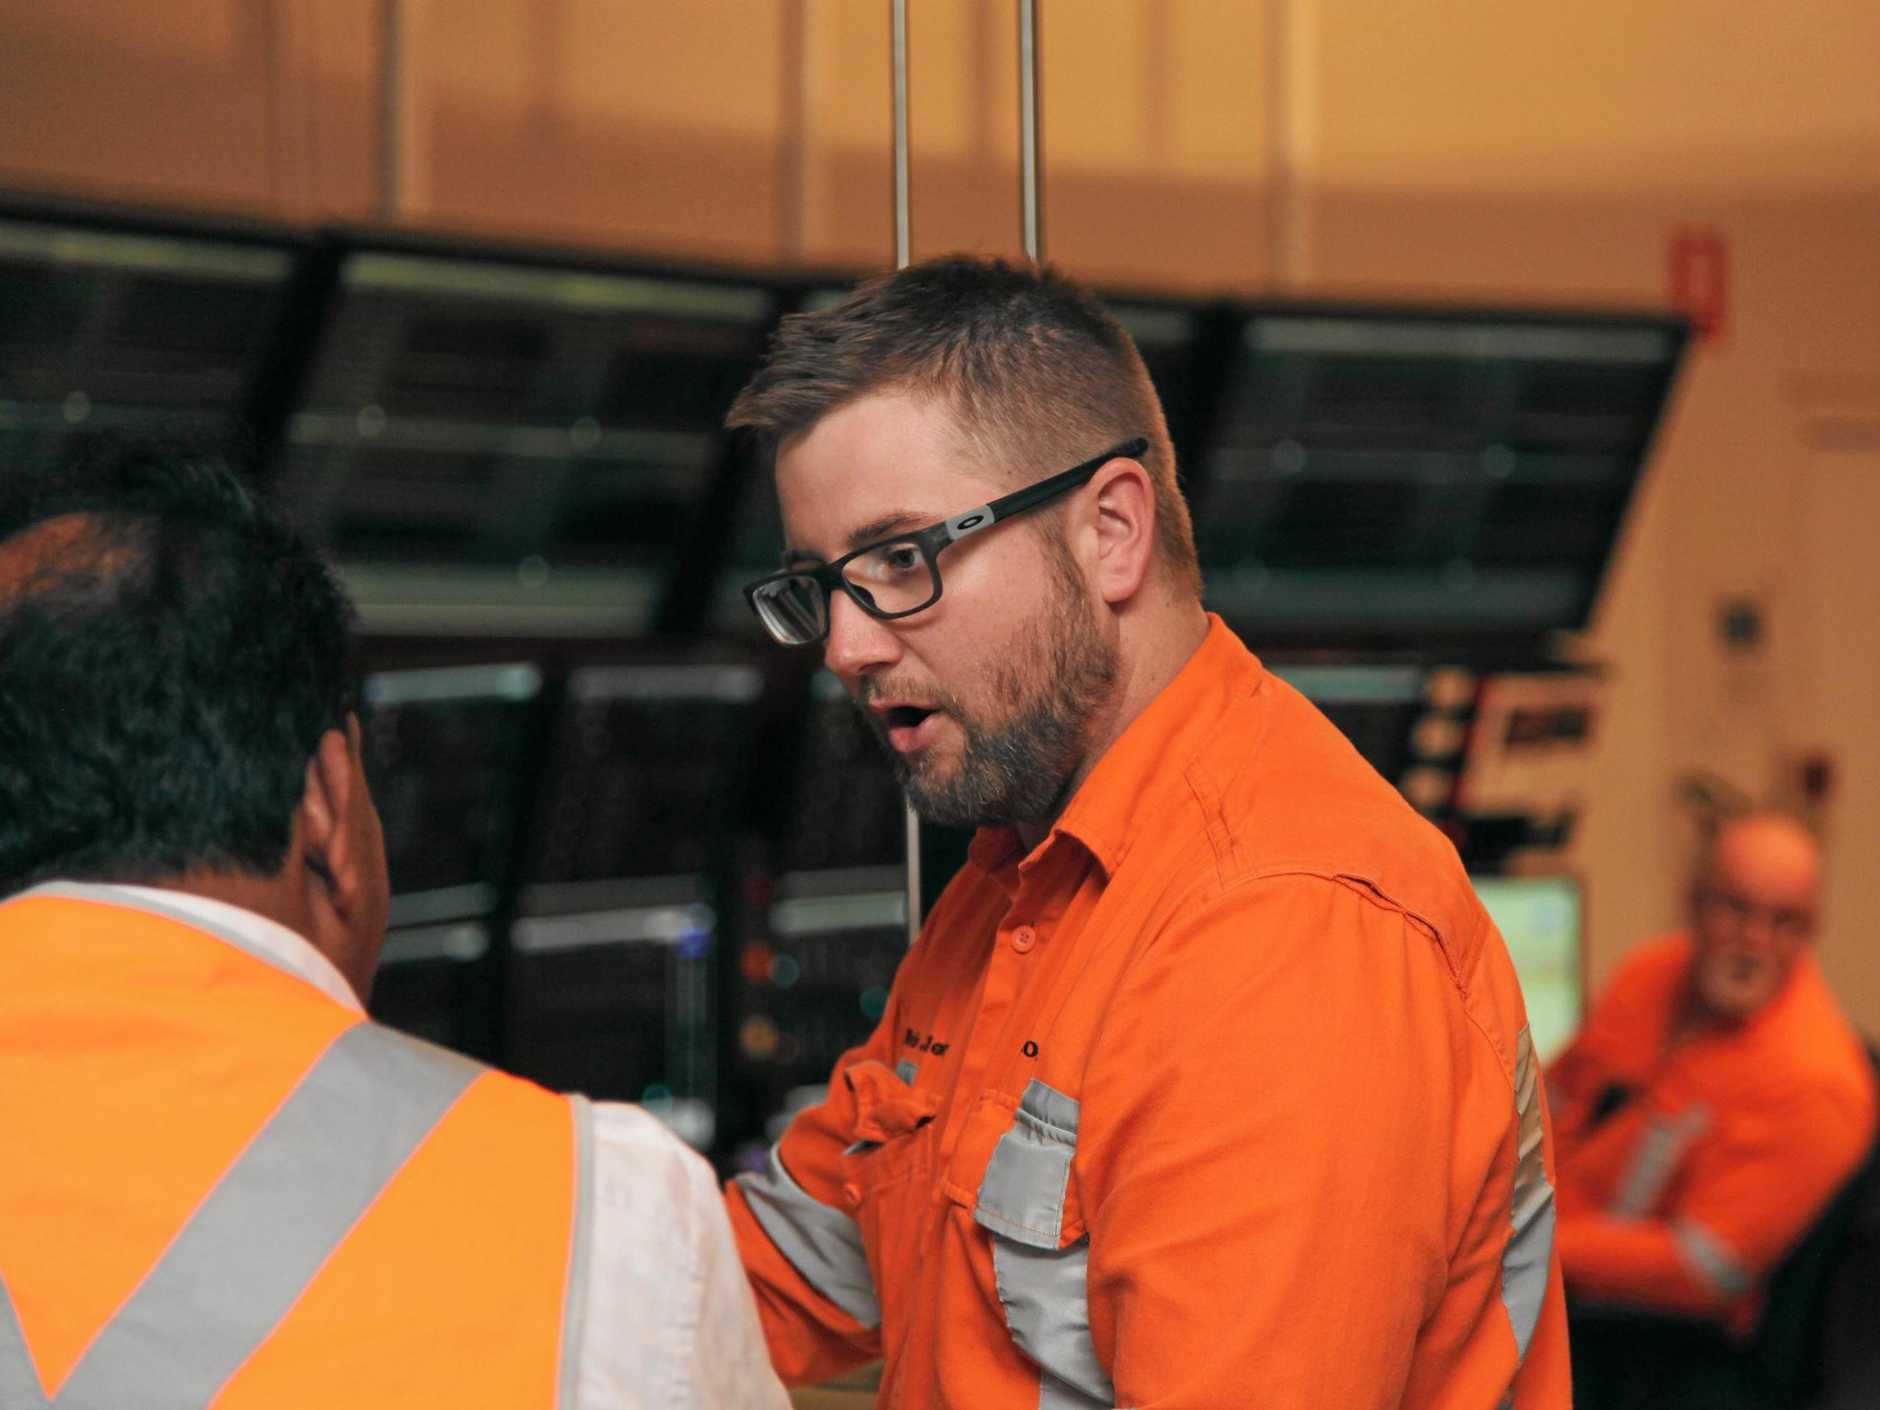 Rio Tinto Yarwun shift controller Kris Jeffery started his career as a trainee in 2004.